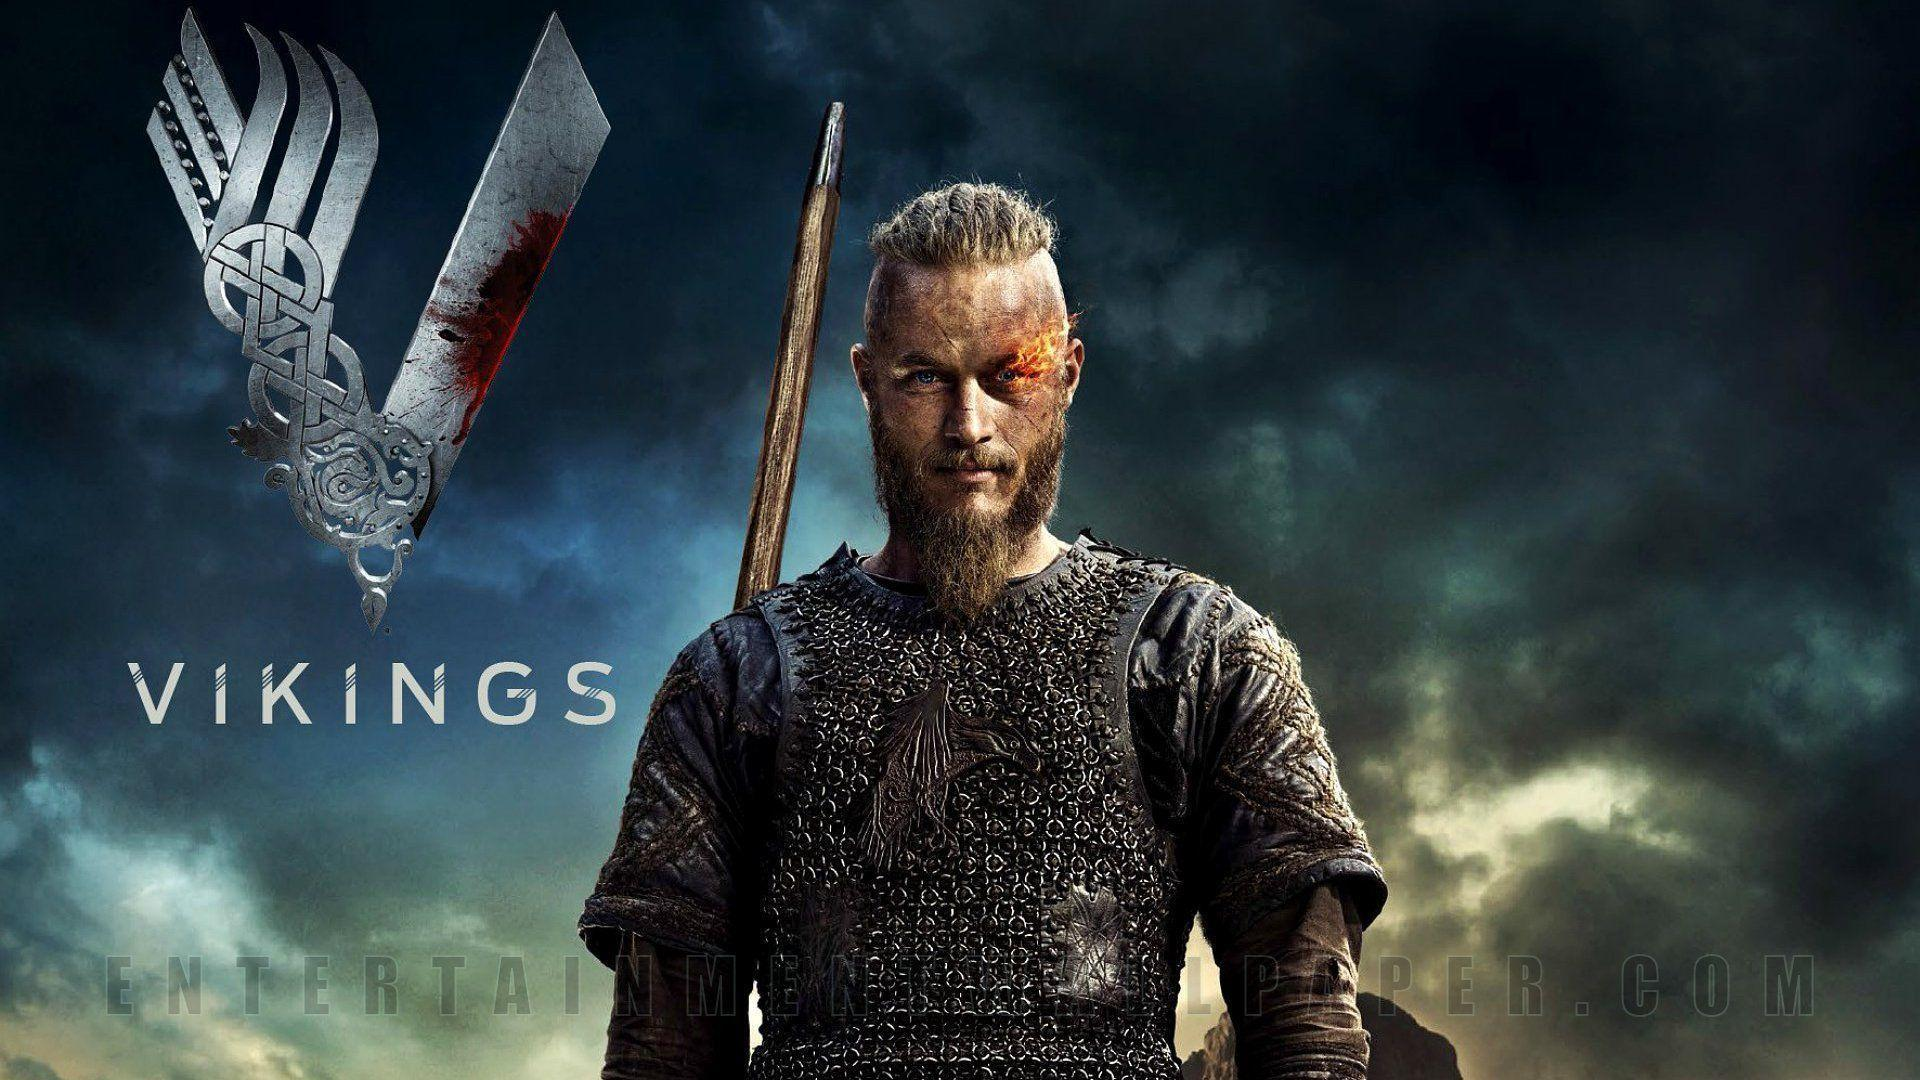 13 Vikings Wallpaper 4k For iPhone, Desktop and Android ...